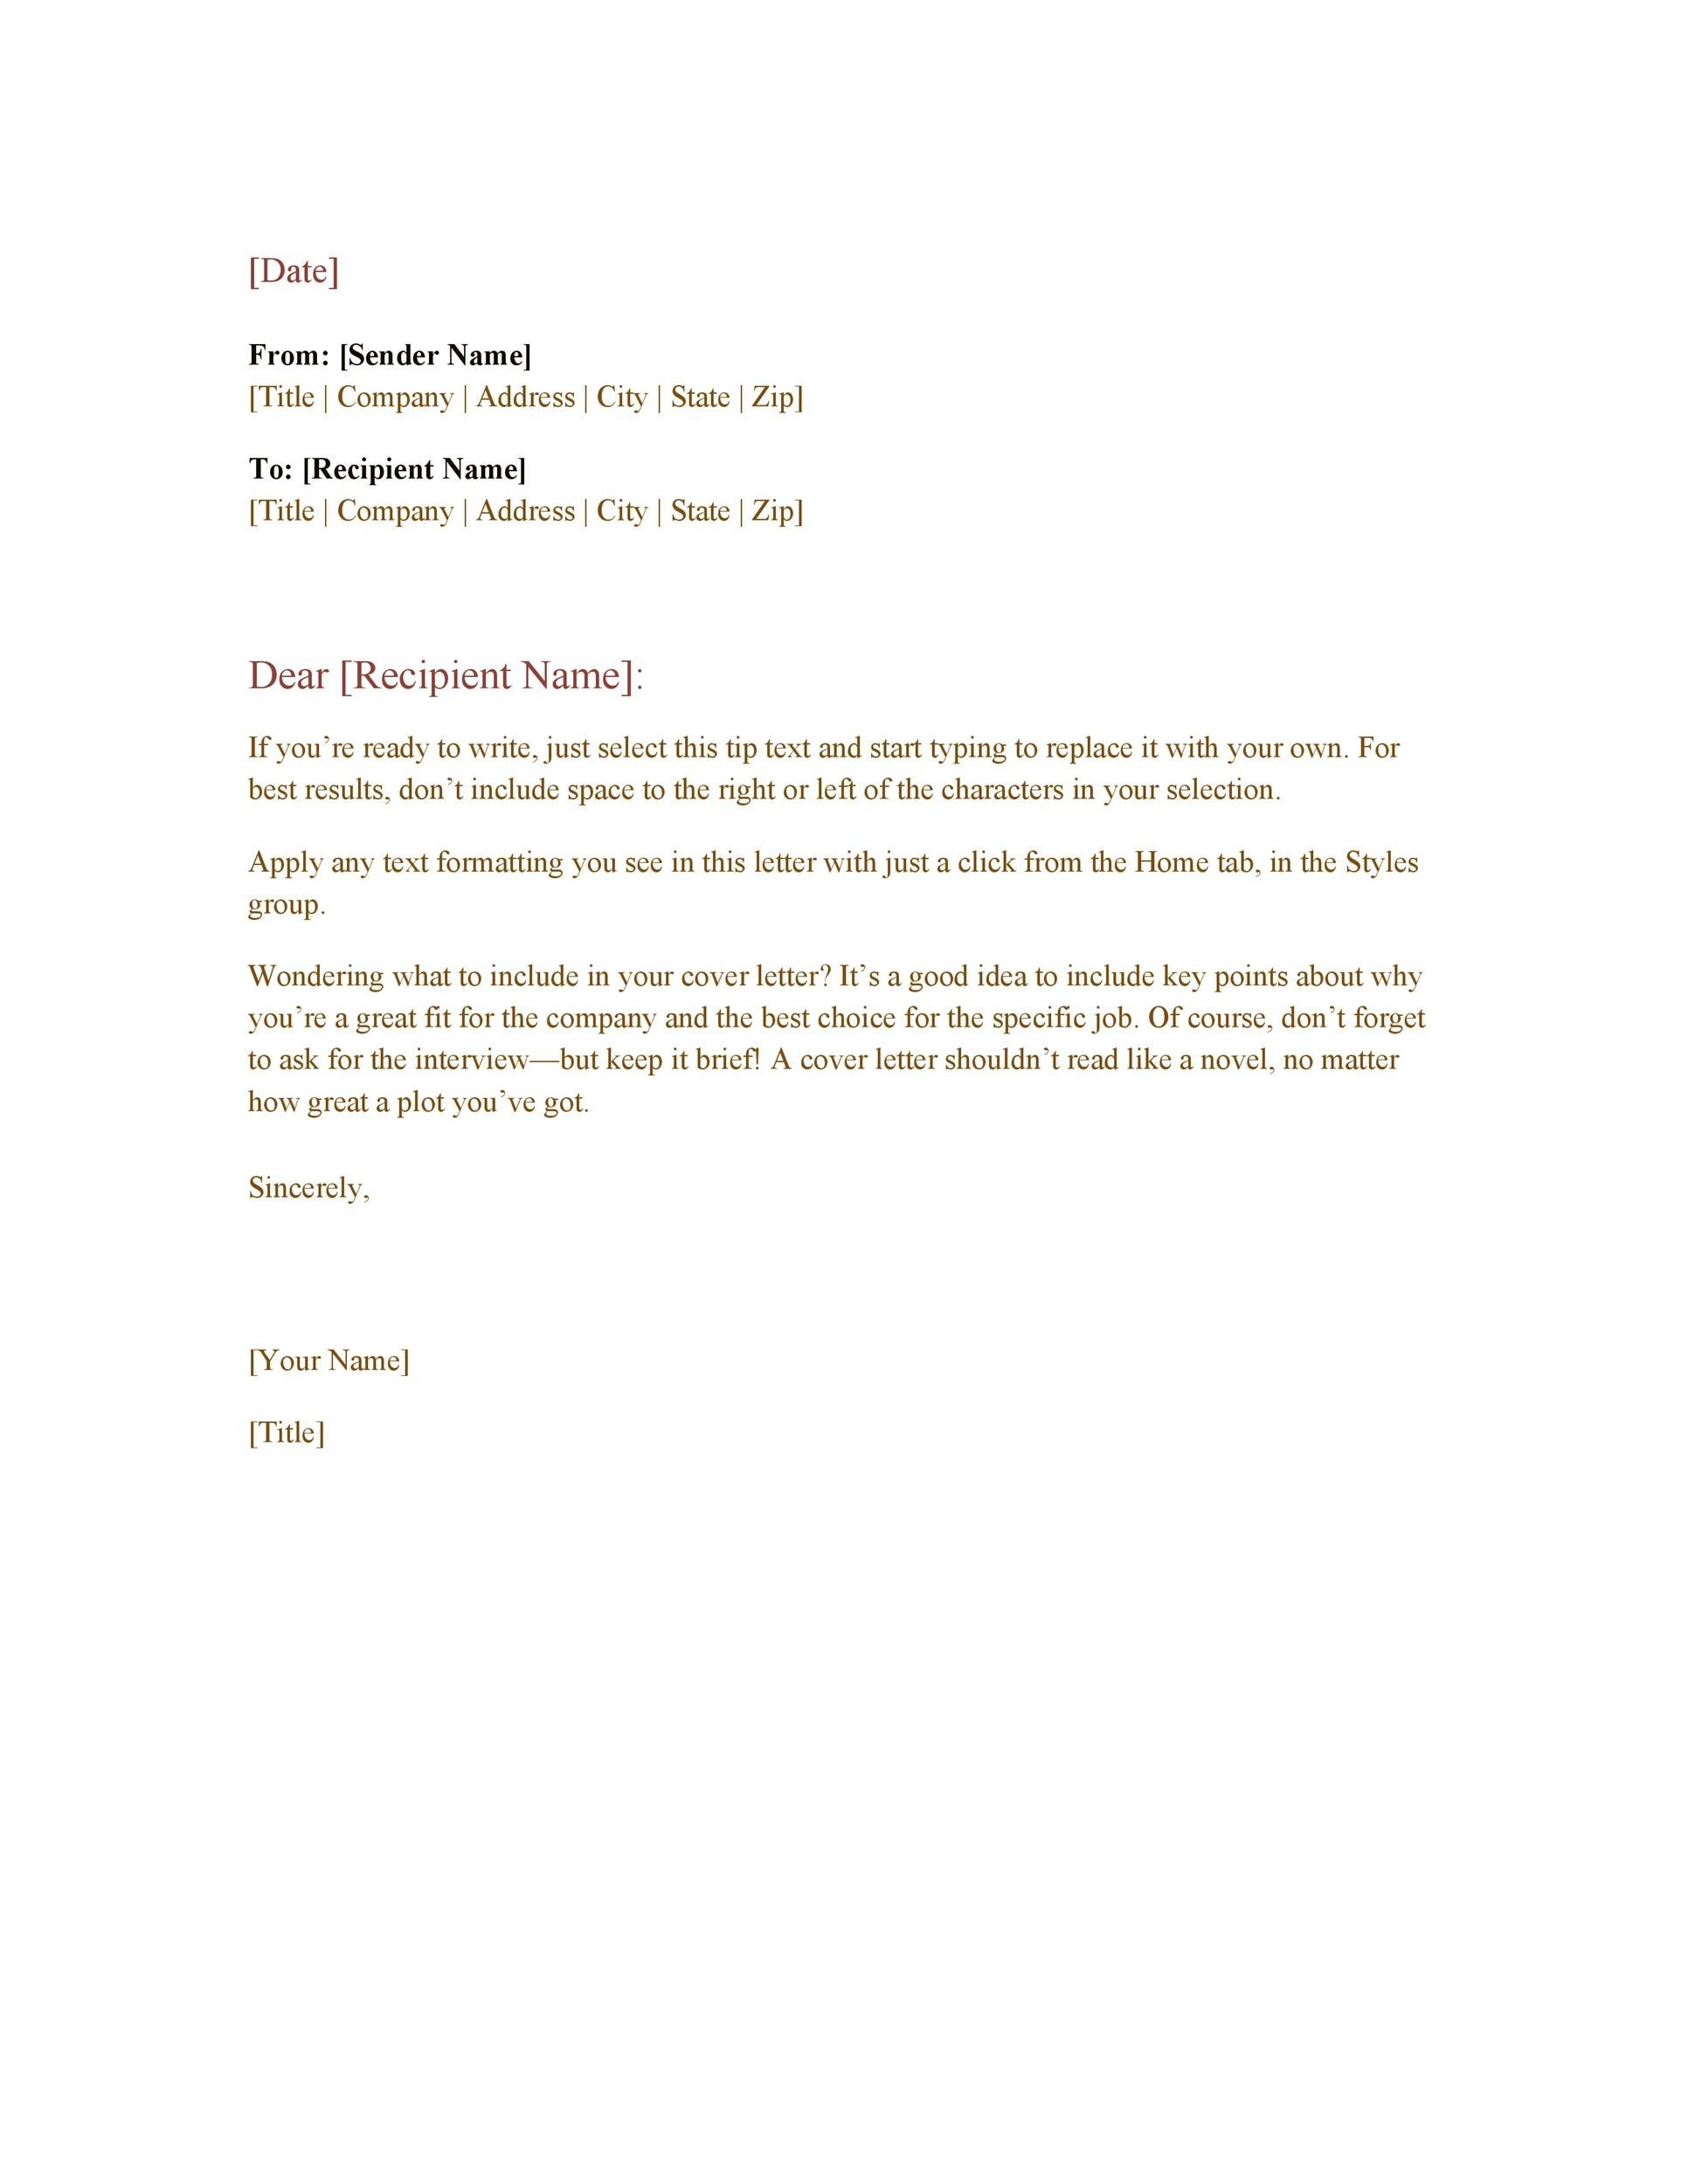 Addressing Business Letter.35 Formal Business Letter Format Templates Examples ᐅ